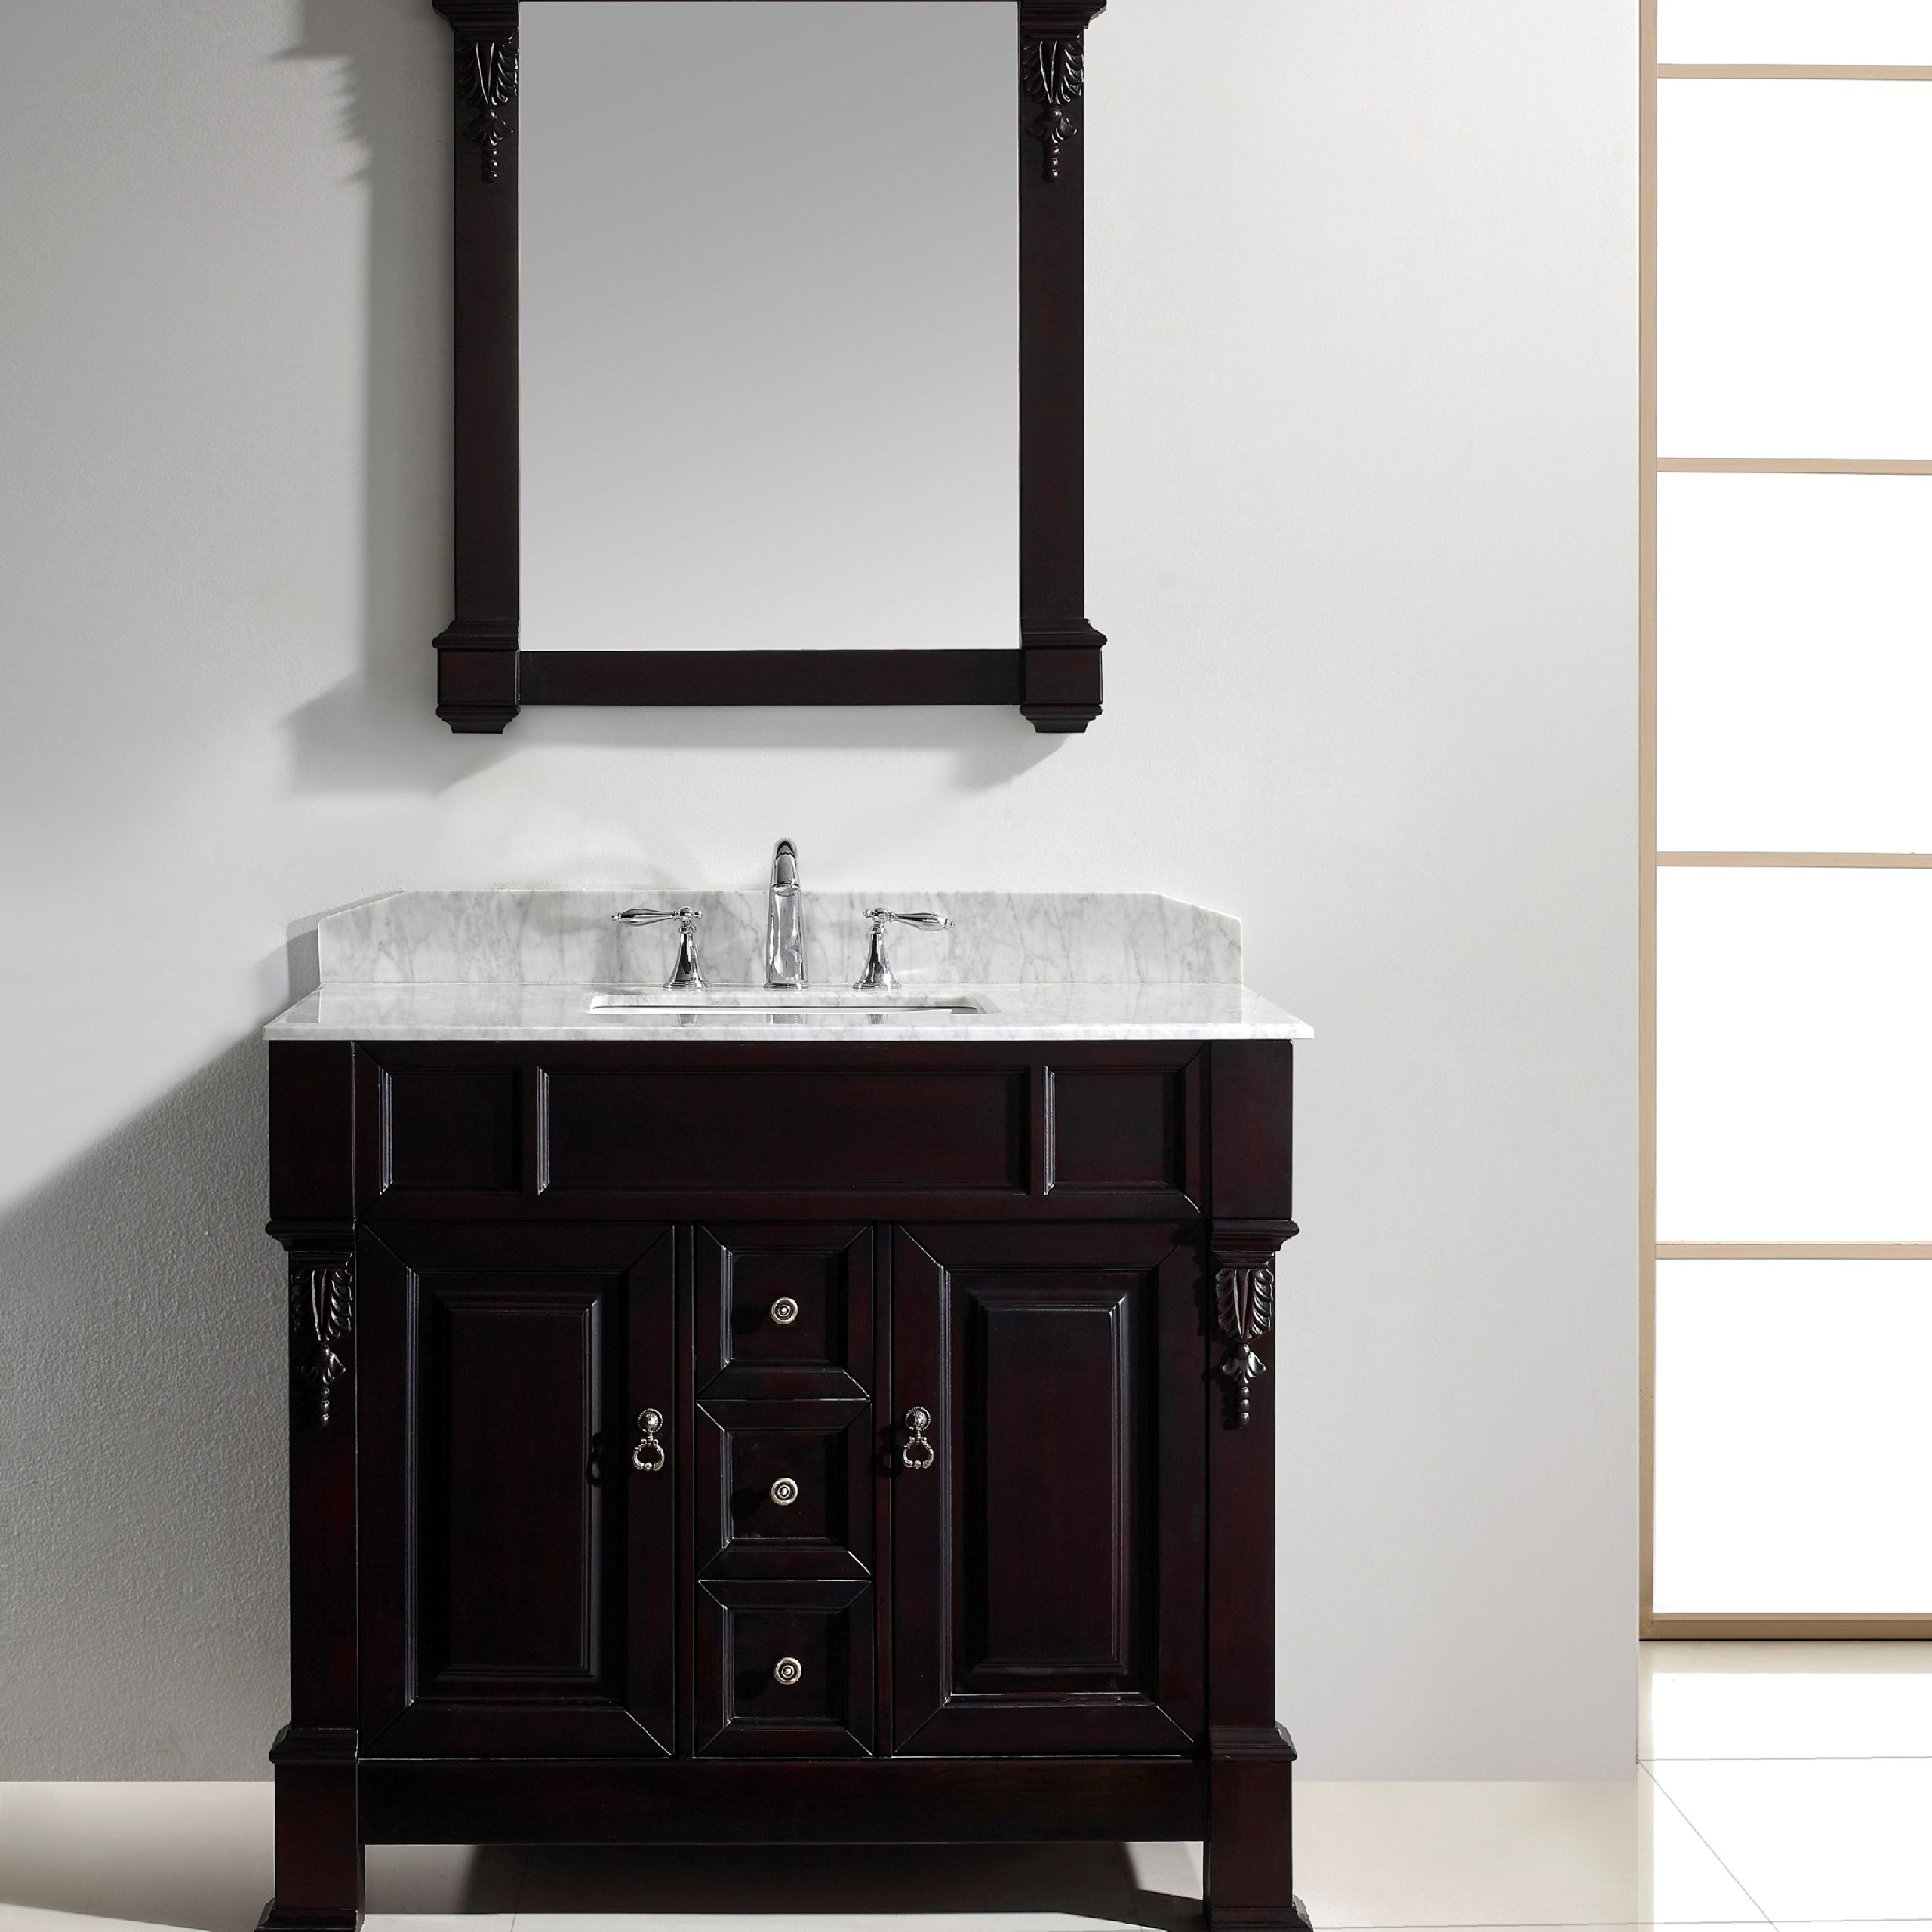 Virtu USA GS-4040-WMSQ-DW-001 Huntshire 40'' single Bathroom Vanity with Marble Top and Square Sink with Brushed Nickel Faucet and Mirror, Dark Walnut